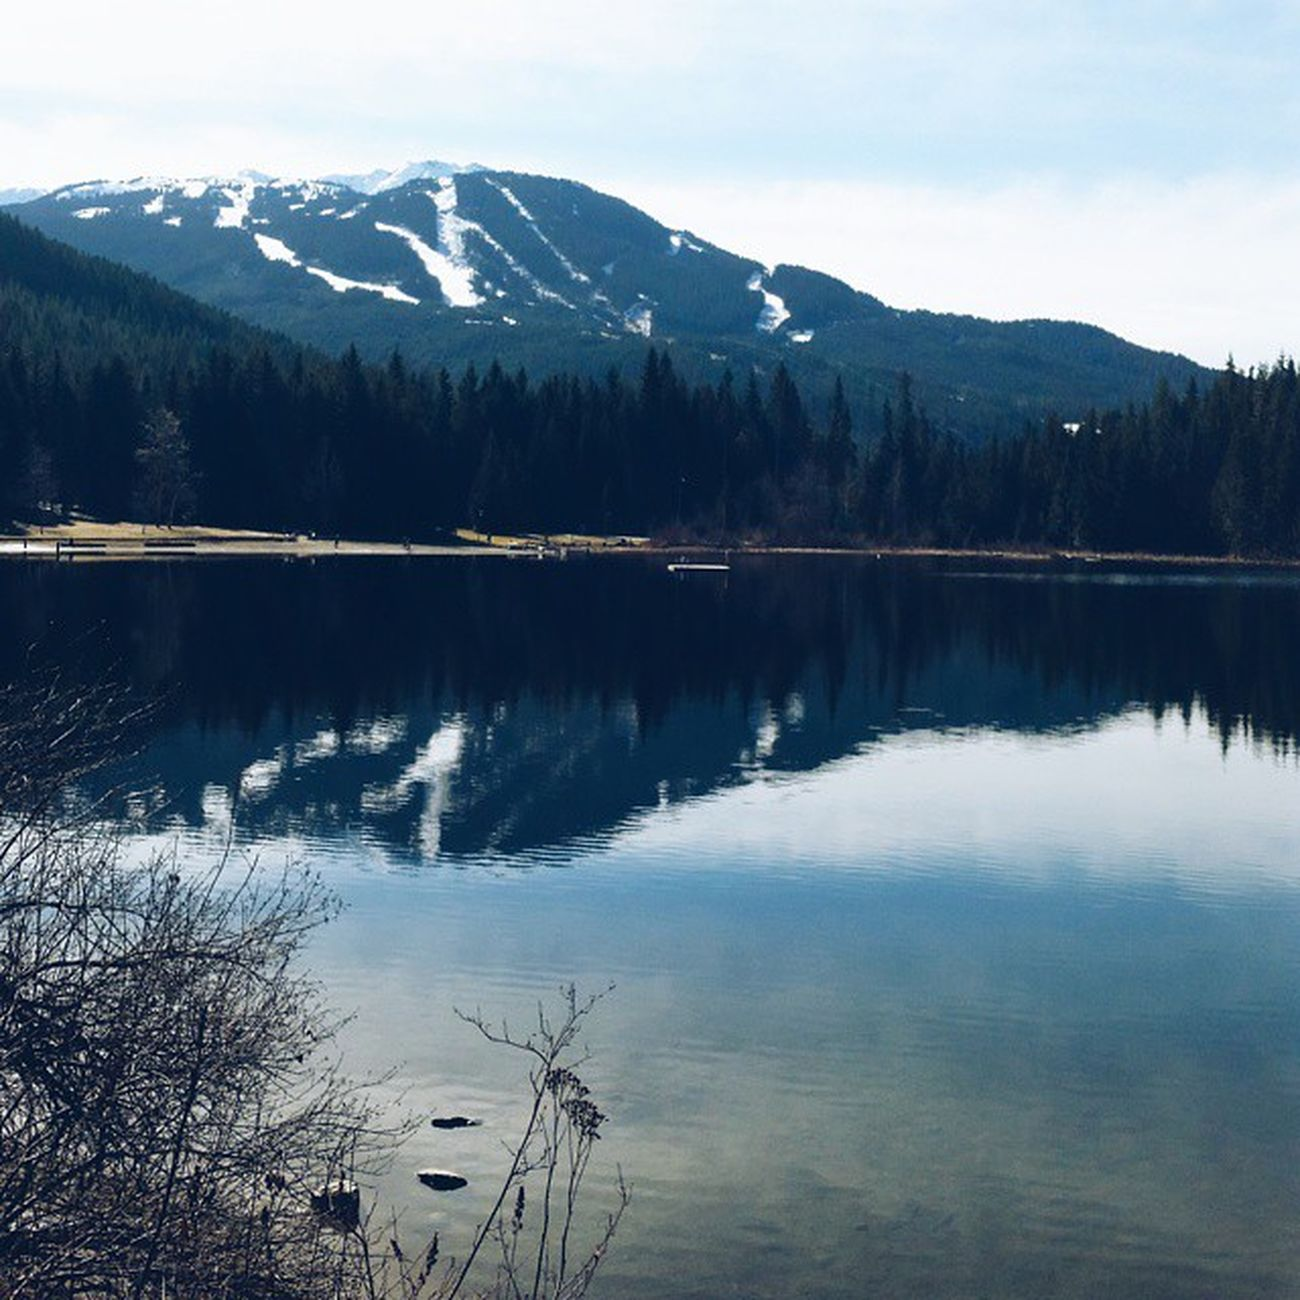 Chasing angels or fleeing demons, go to the mountains - Jeffrey Rasley || Hiking Beautifulbc Latergram Takesmeback vscocam whistler gtfoutside mountains reflection